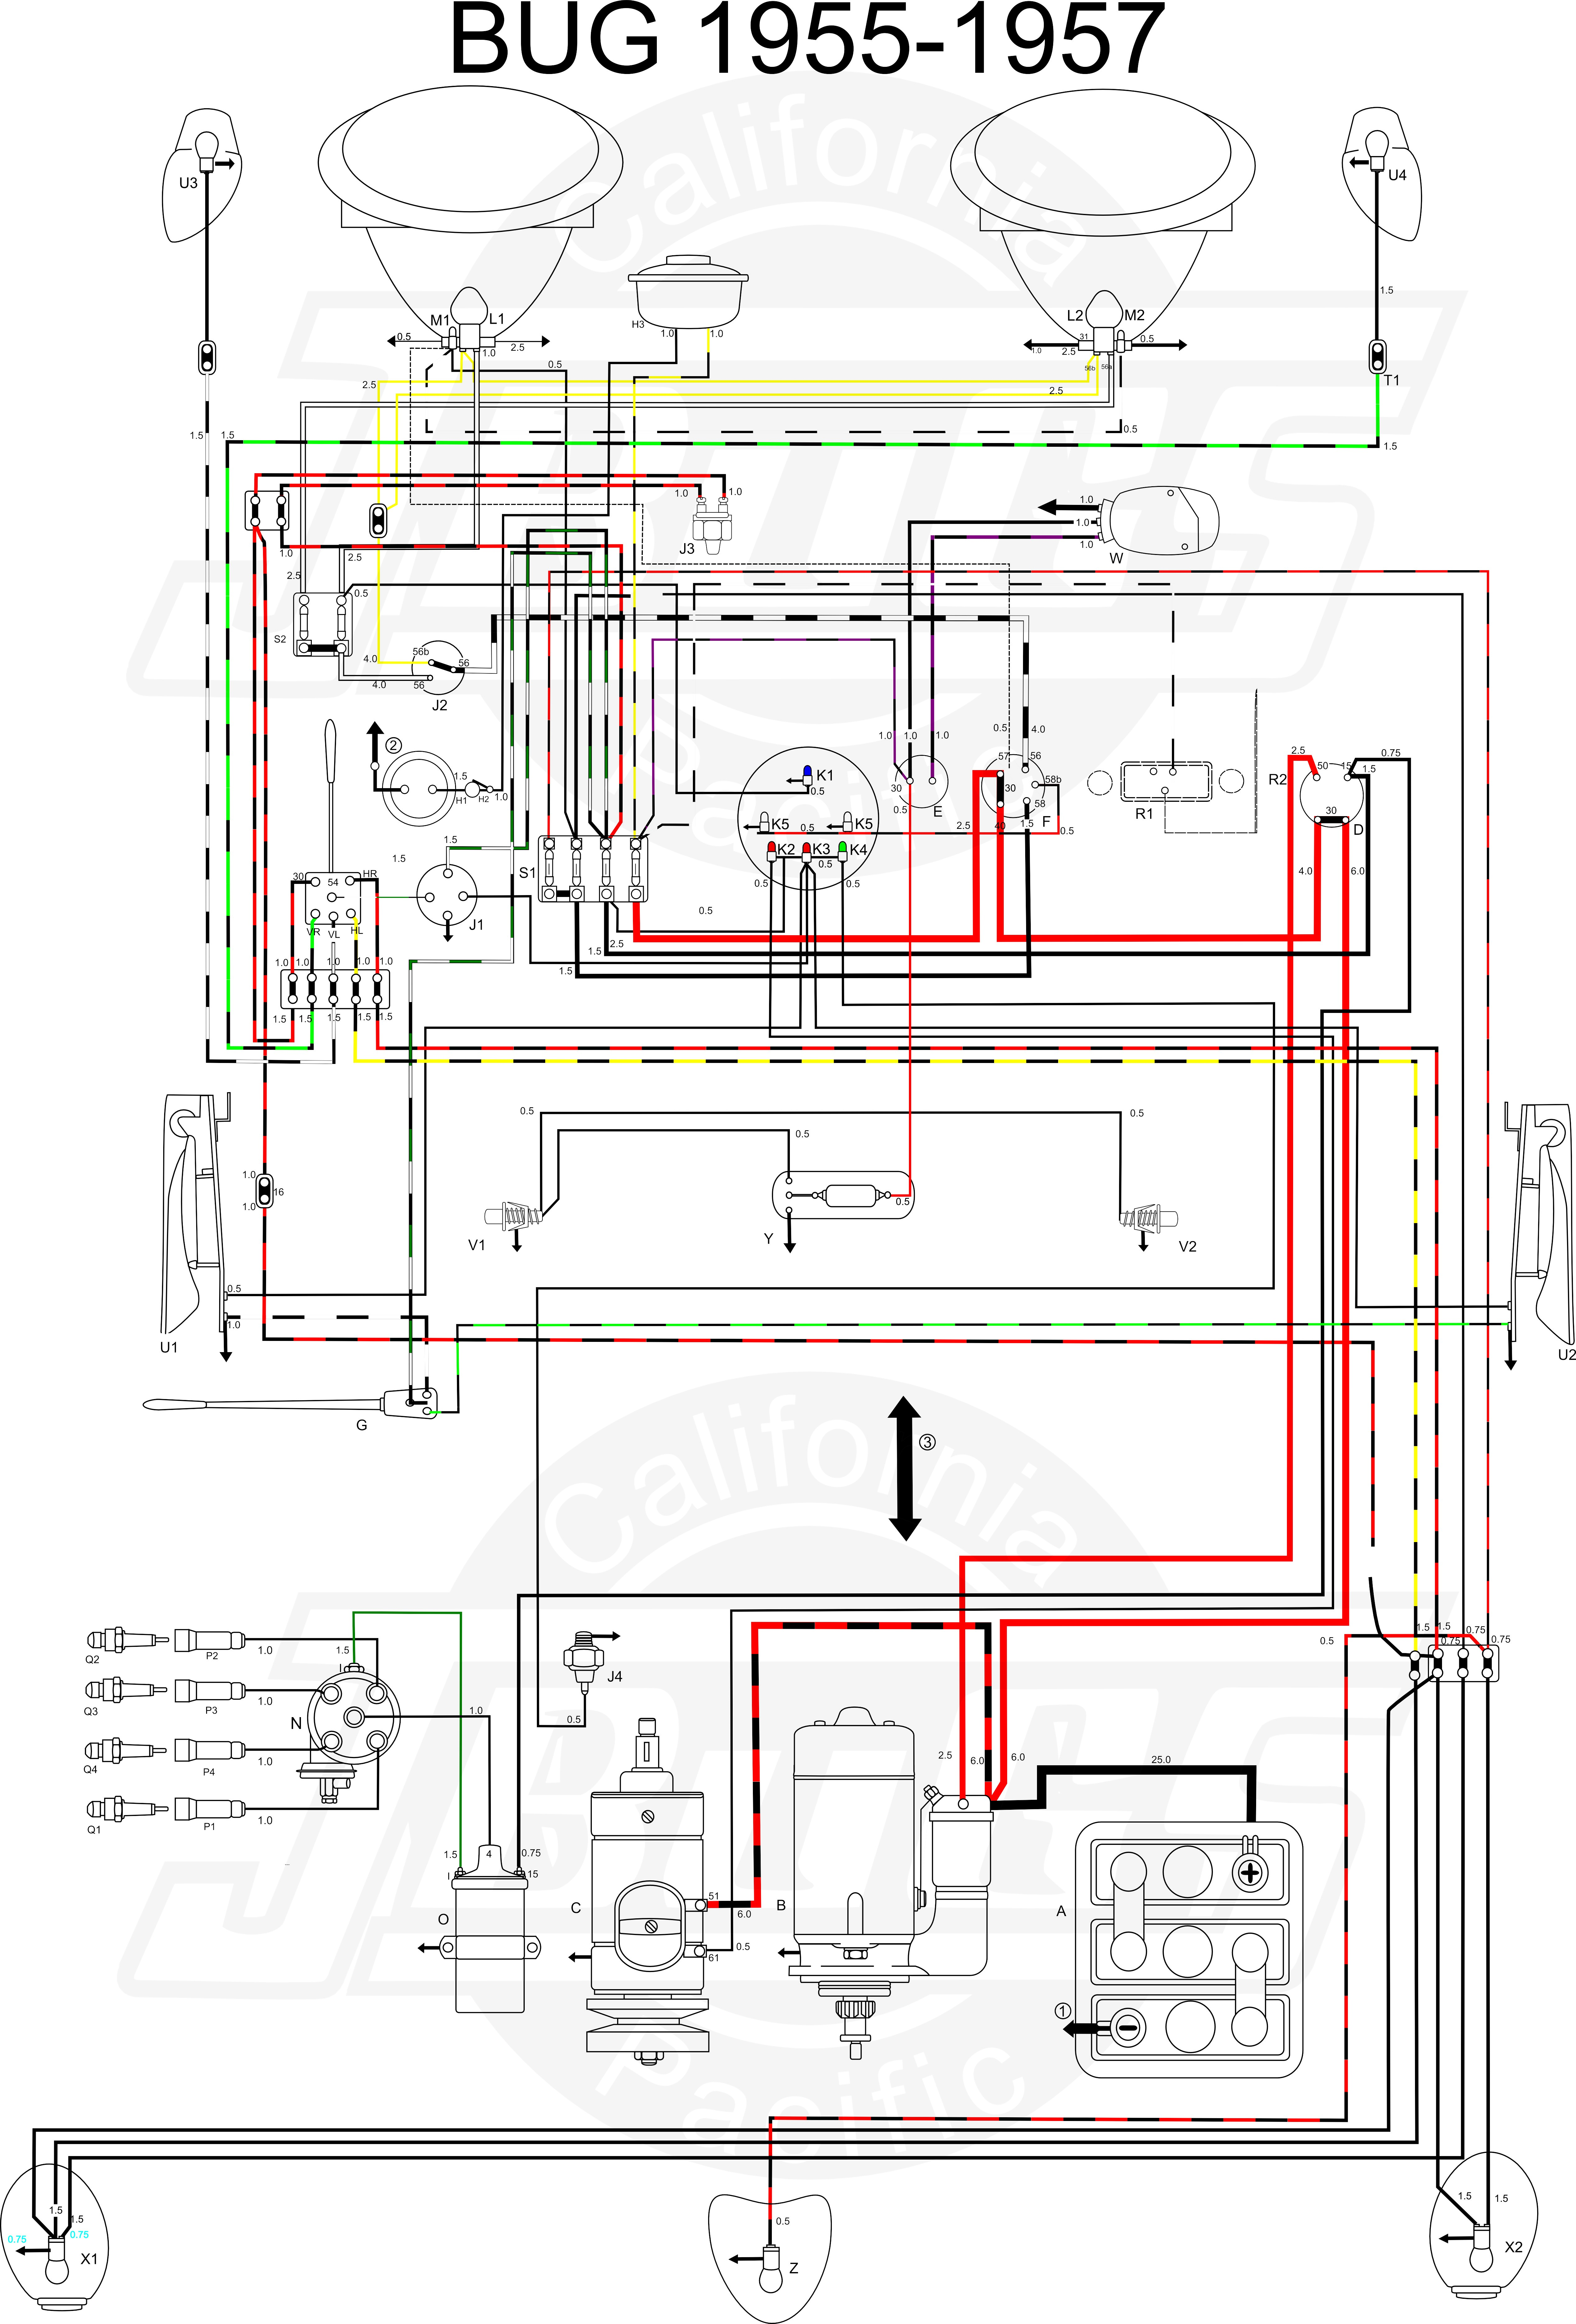 Ignition coil wiring diagram vw beetle wire center